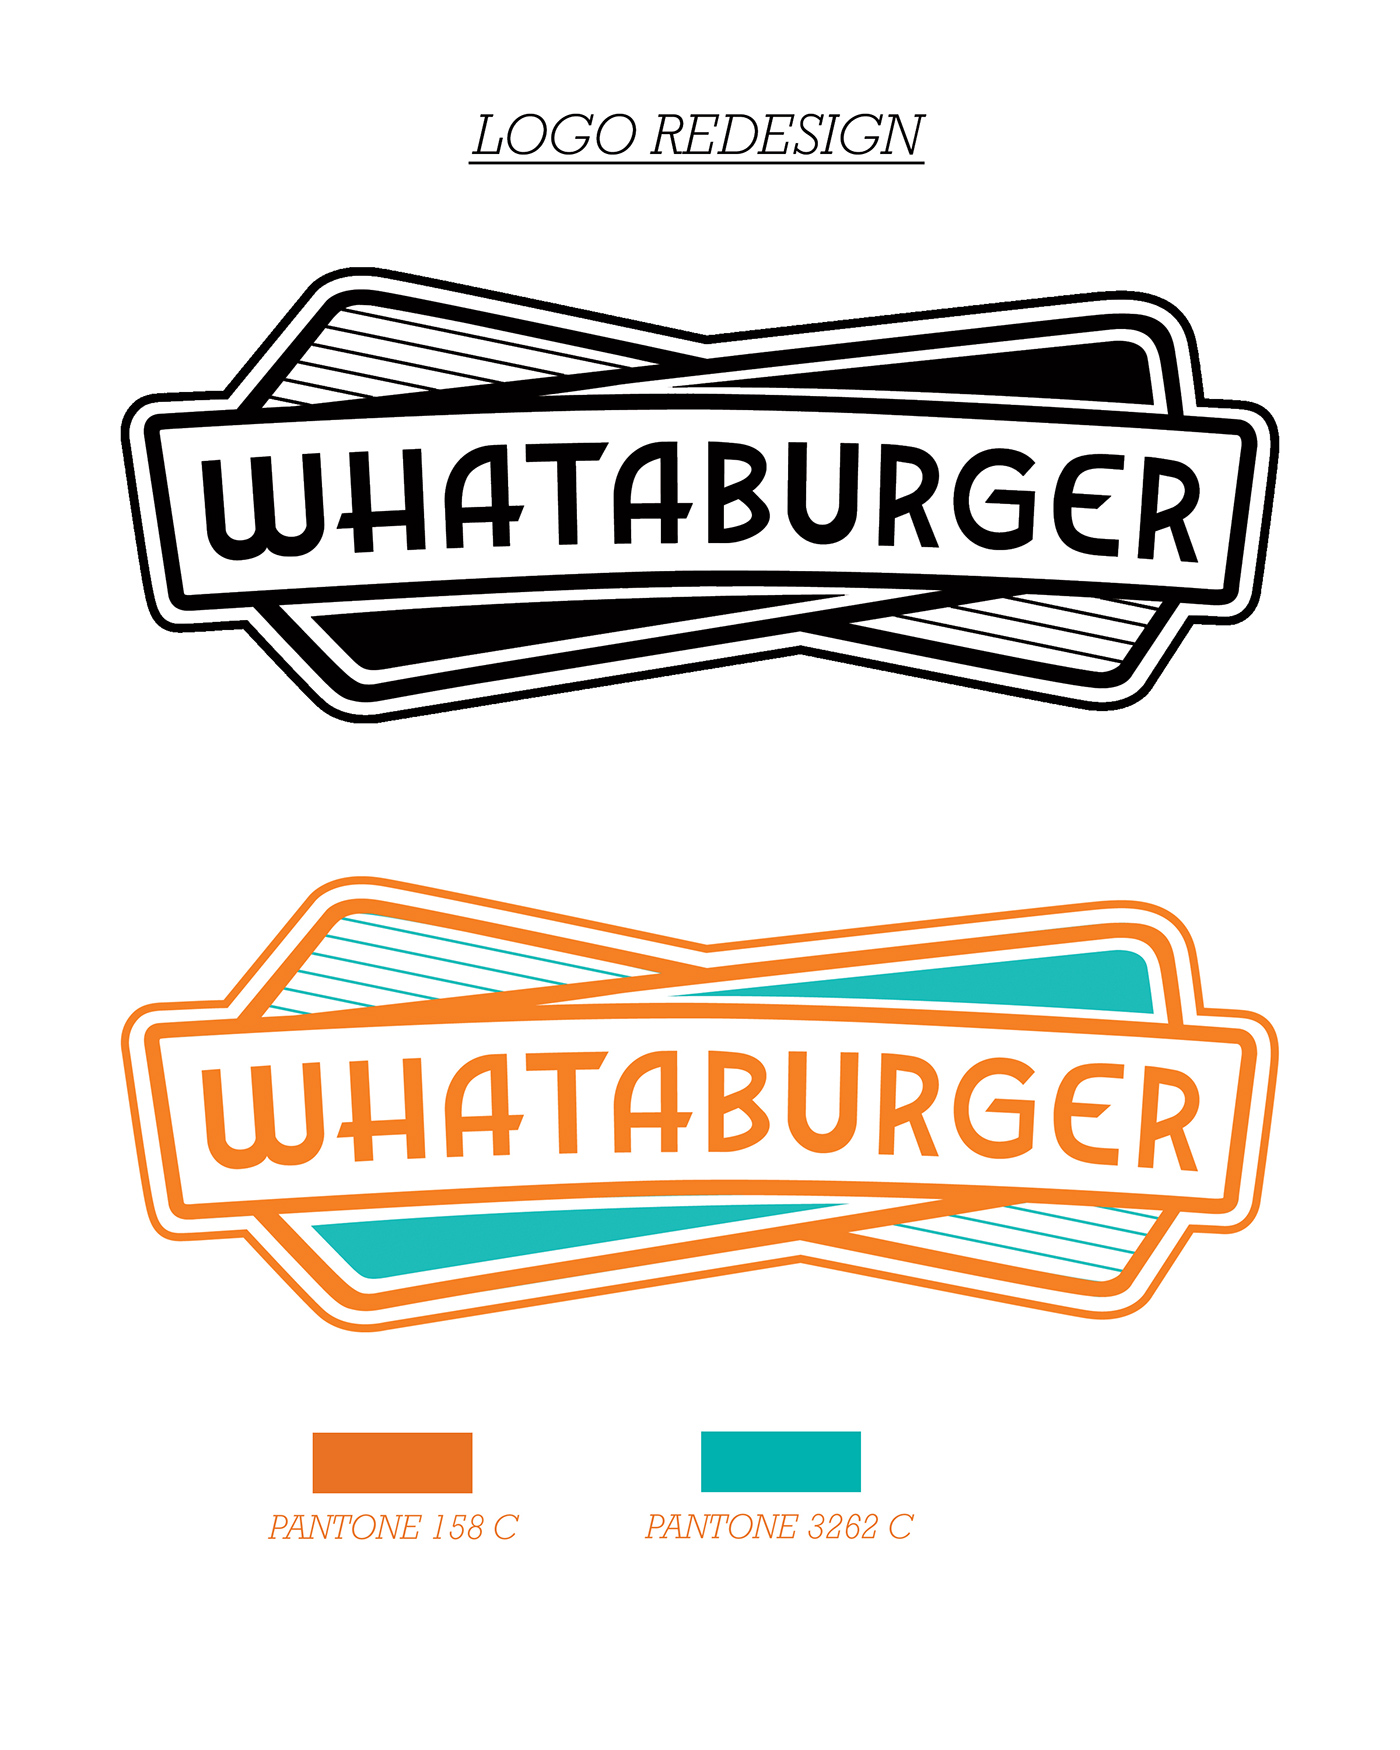 Whataburger\' Rebranding Project on Behance